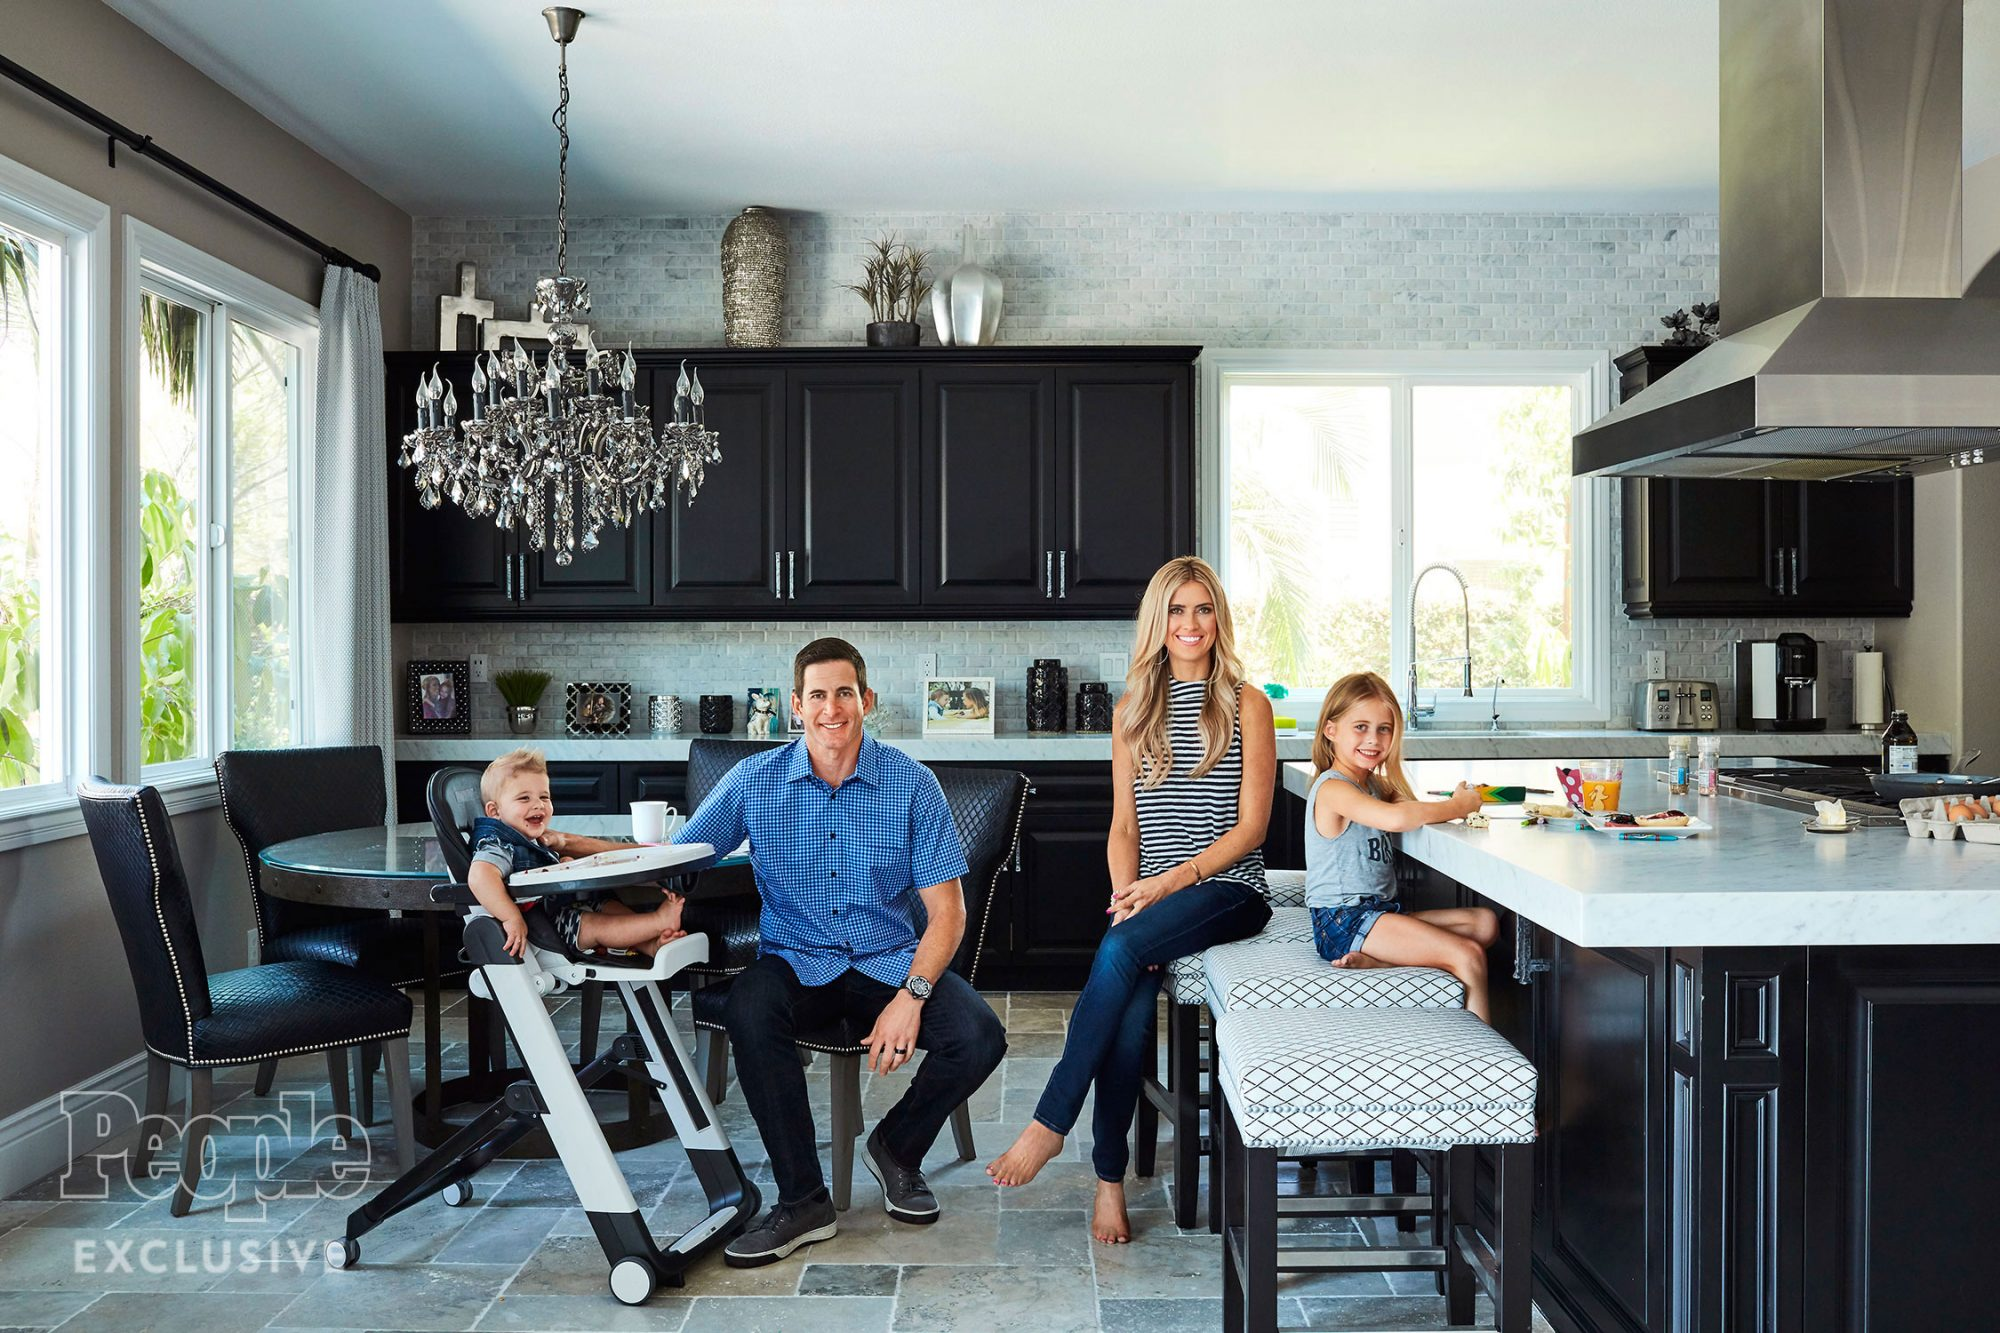 HRR 1F7800FD Flip or Flop Christina & Tarek El Moussa and their children Taylor & Brayden photographed at home in Yorba Linda, CA on August 24th, 2016 Photographer: Joe Schmelzer Hair & Makeup: Shannon Rhodes No styling or clothing credits